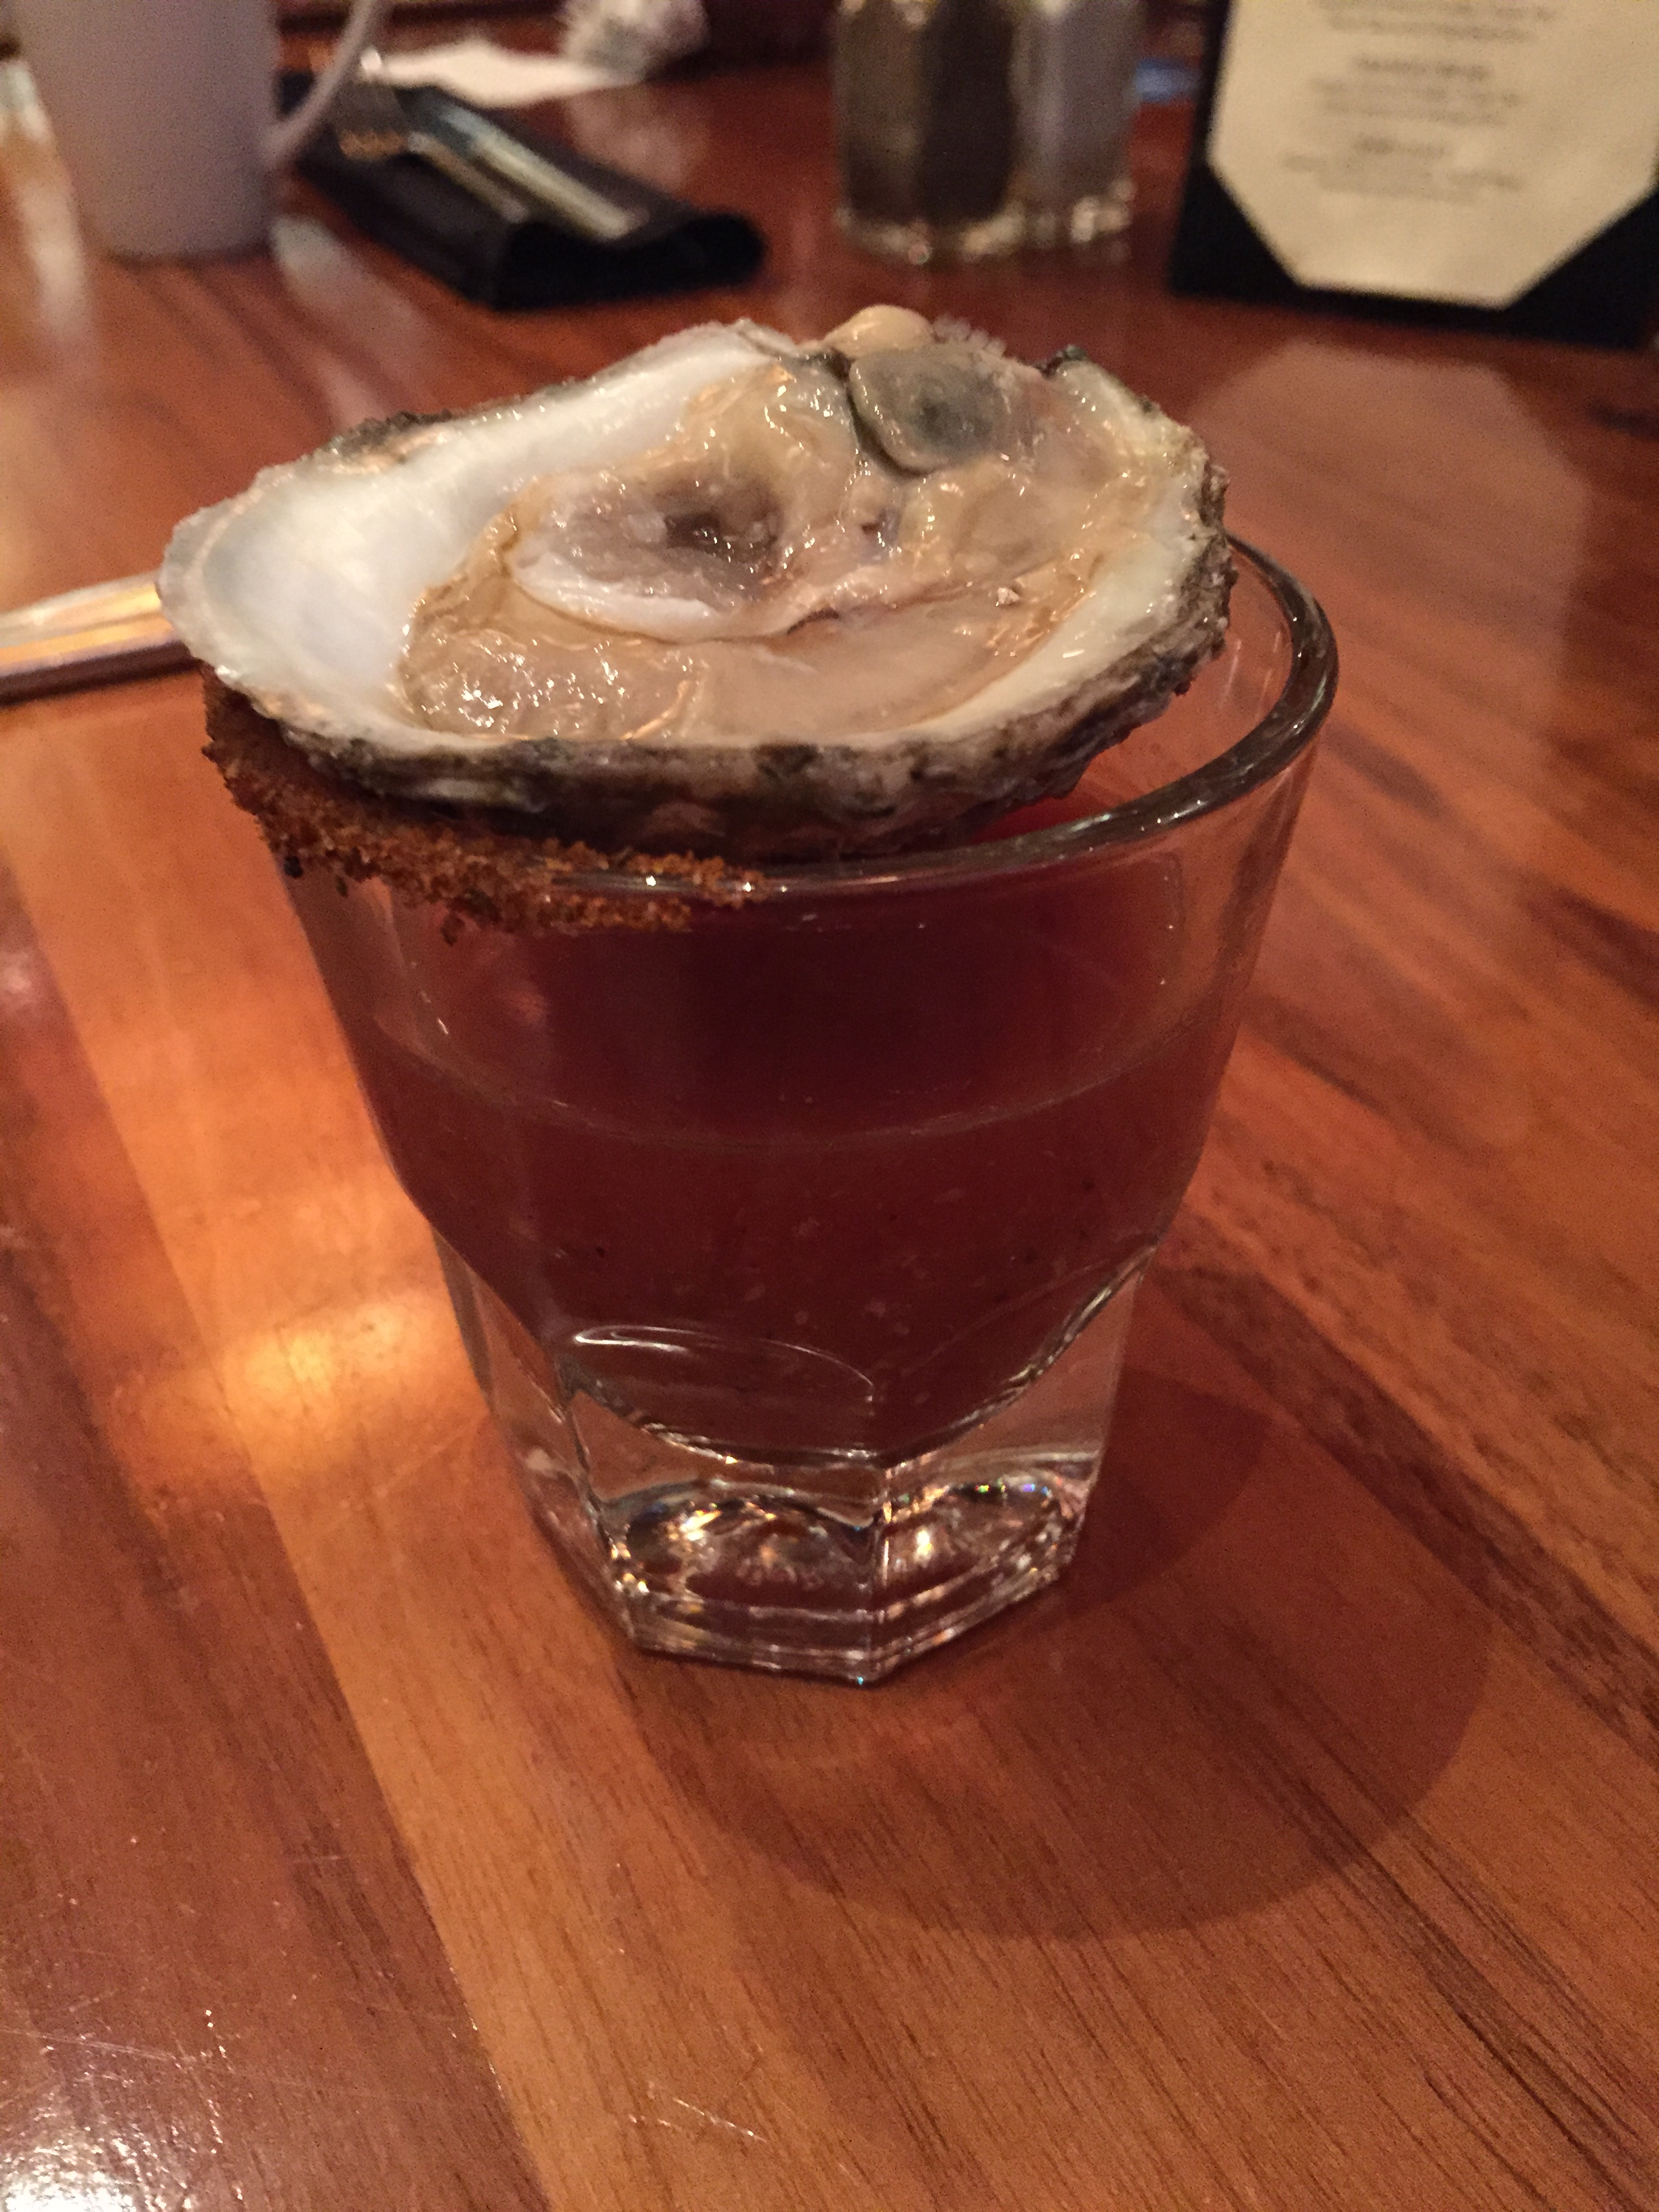 Everyone received a complimentary Oyster Shooter. Unfortunately/fortunately I had to give mine to the birthday girl.